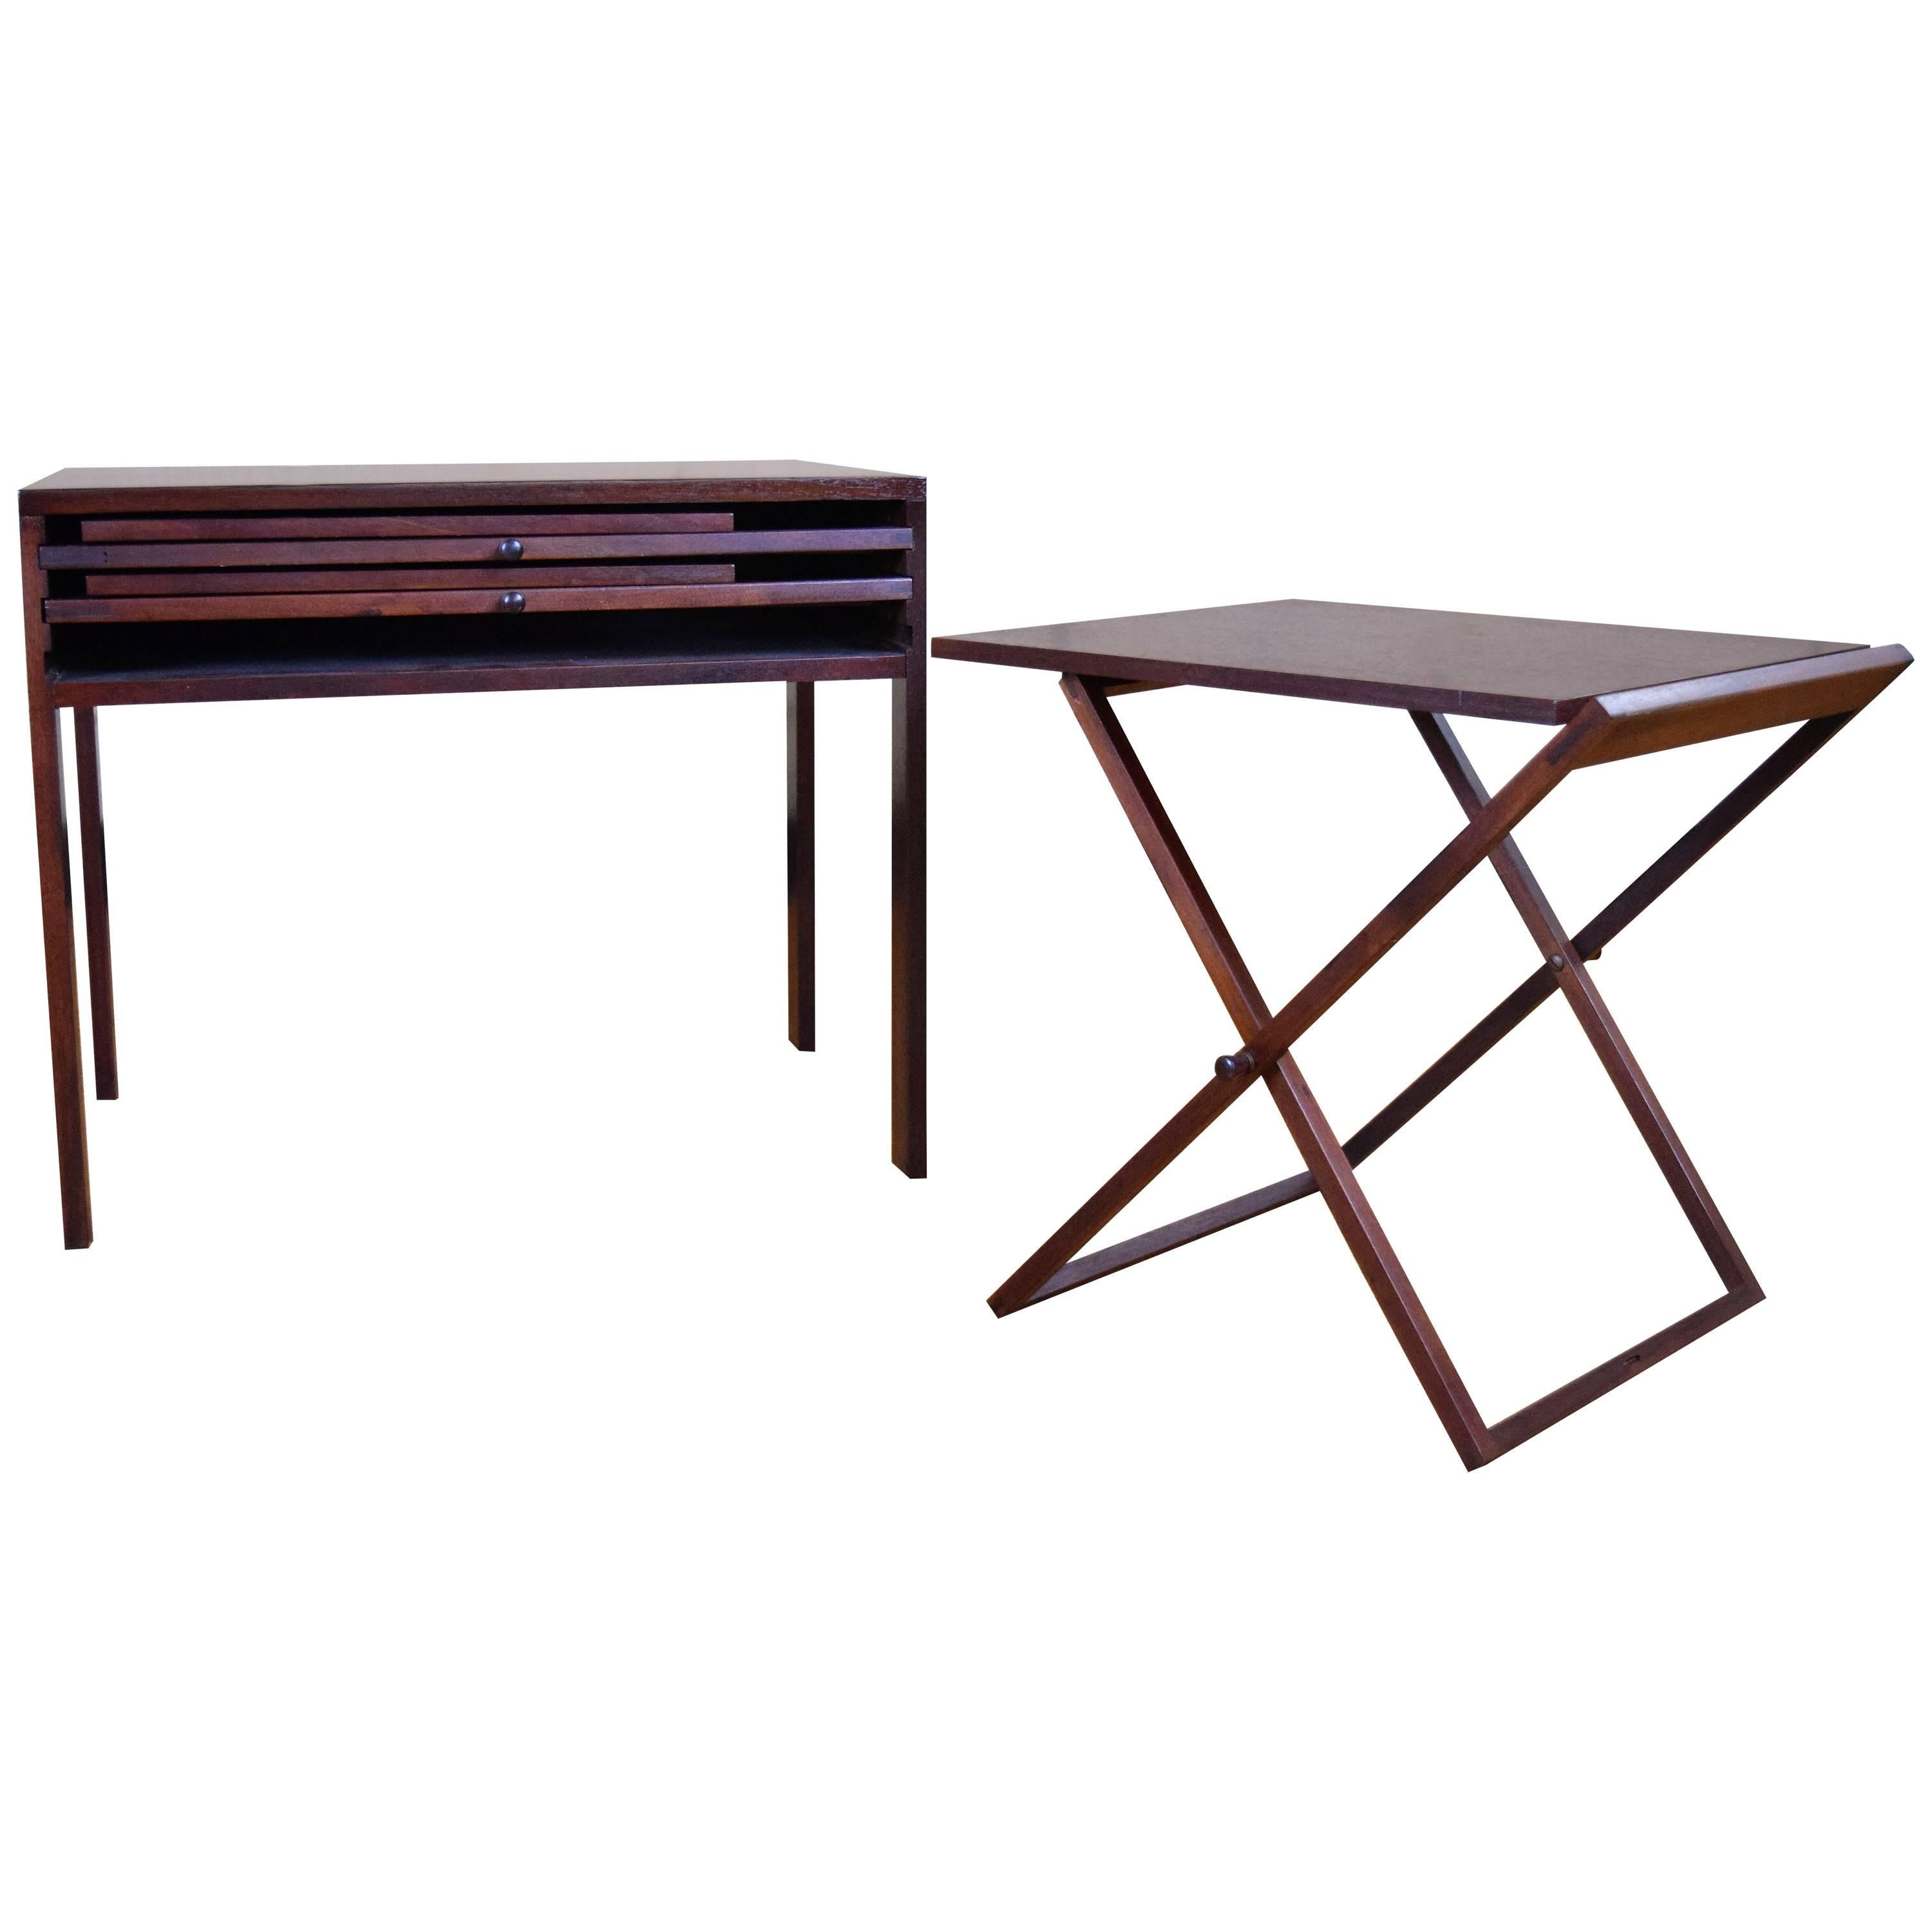 Illum Wikkelso Danish Modern Folding Table Tray Set In Rosewood And Teak